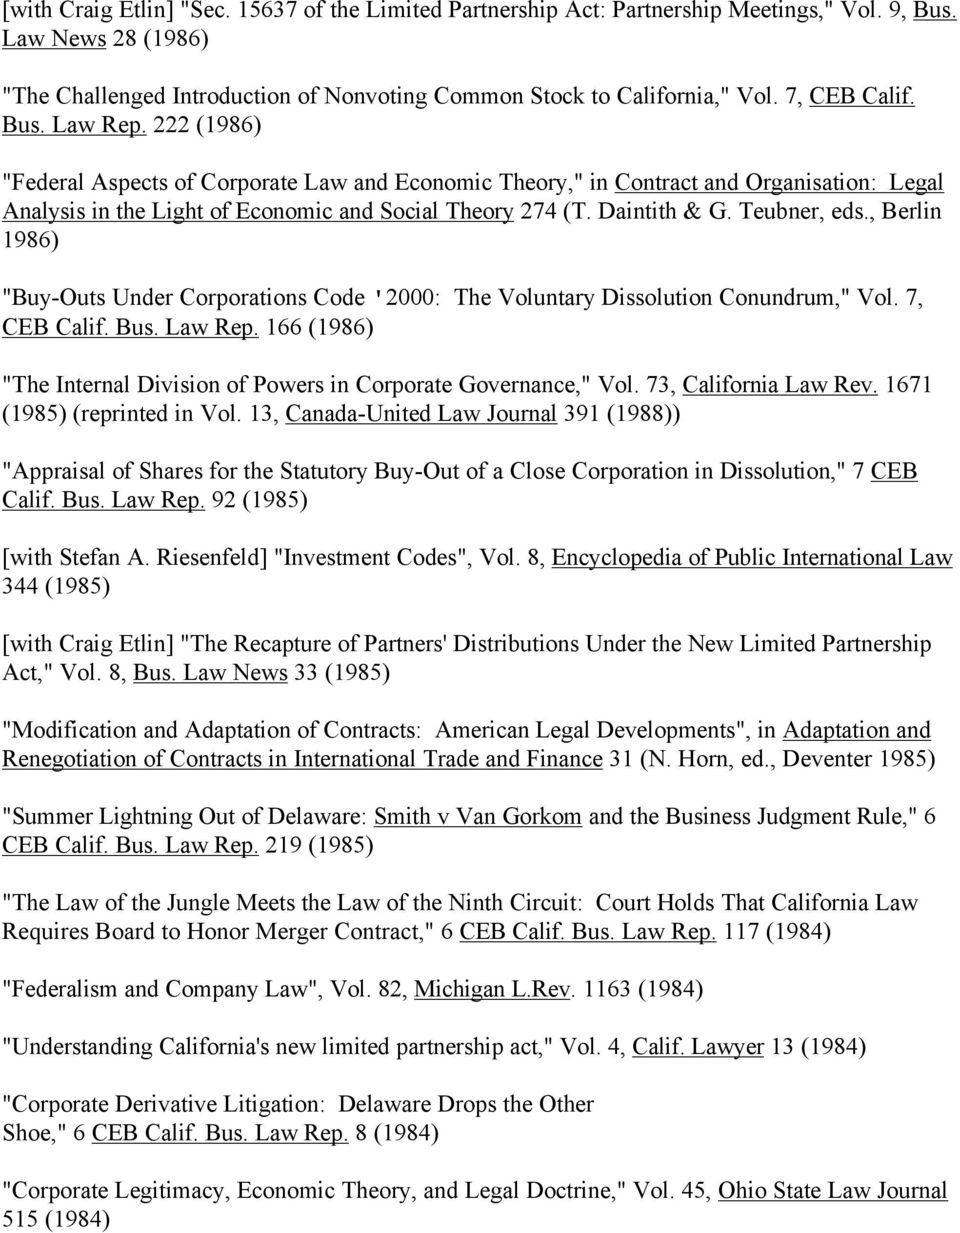 "Daintith & G. Teubner, eds., Berlin 1986) ""Buy-Outs Under Corporations Code '2000: The Voluntary Dissolution Conundrum,"" Vol. 7, CEB Calif. Bus. Law Rep."